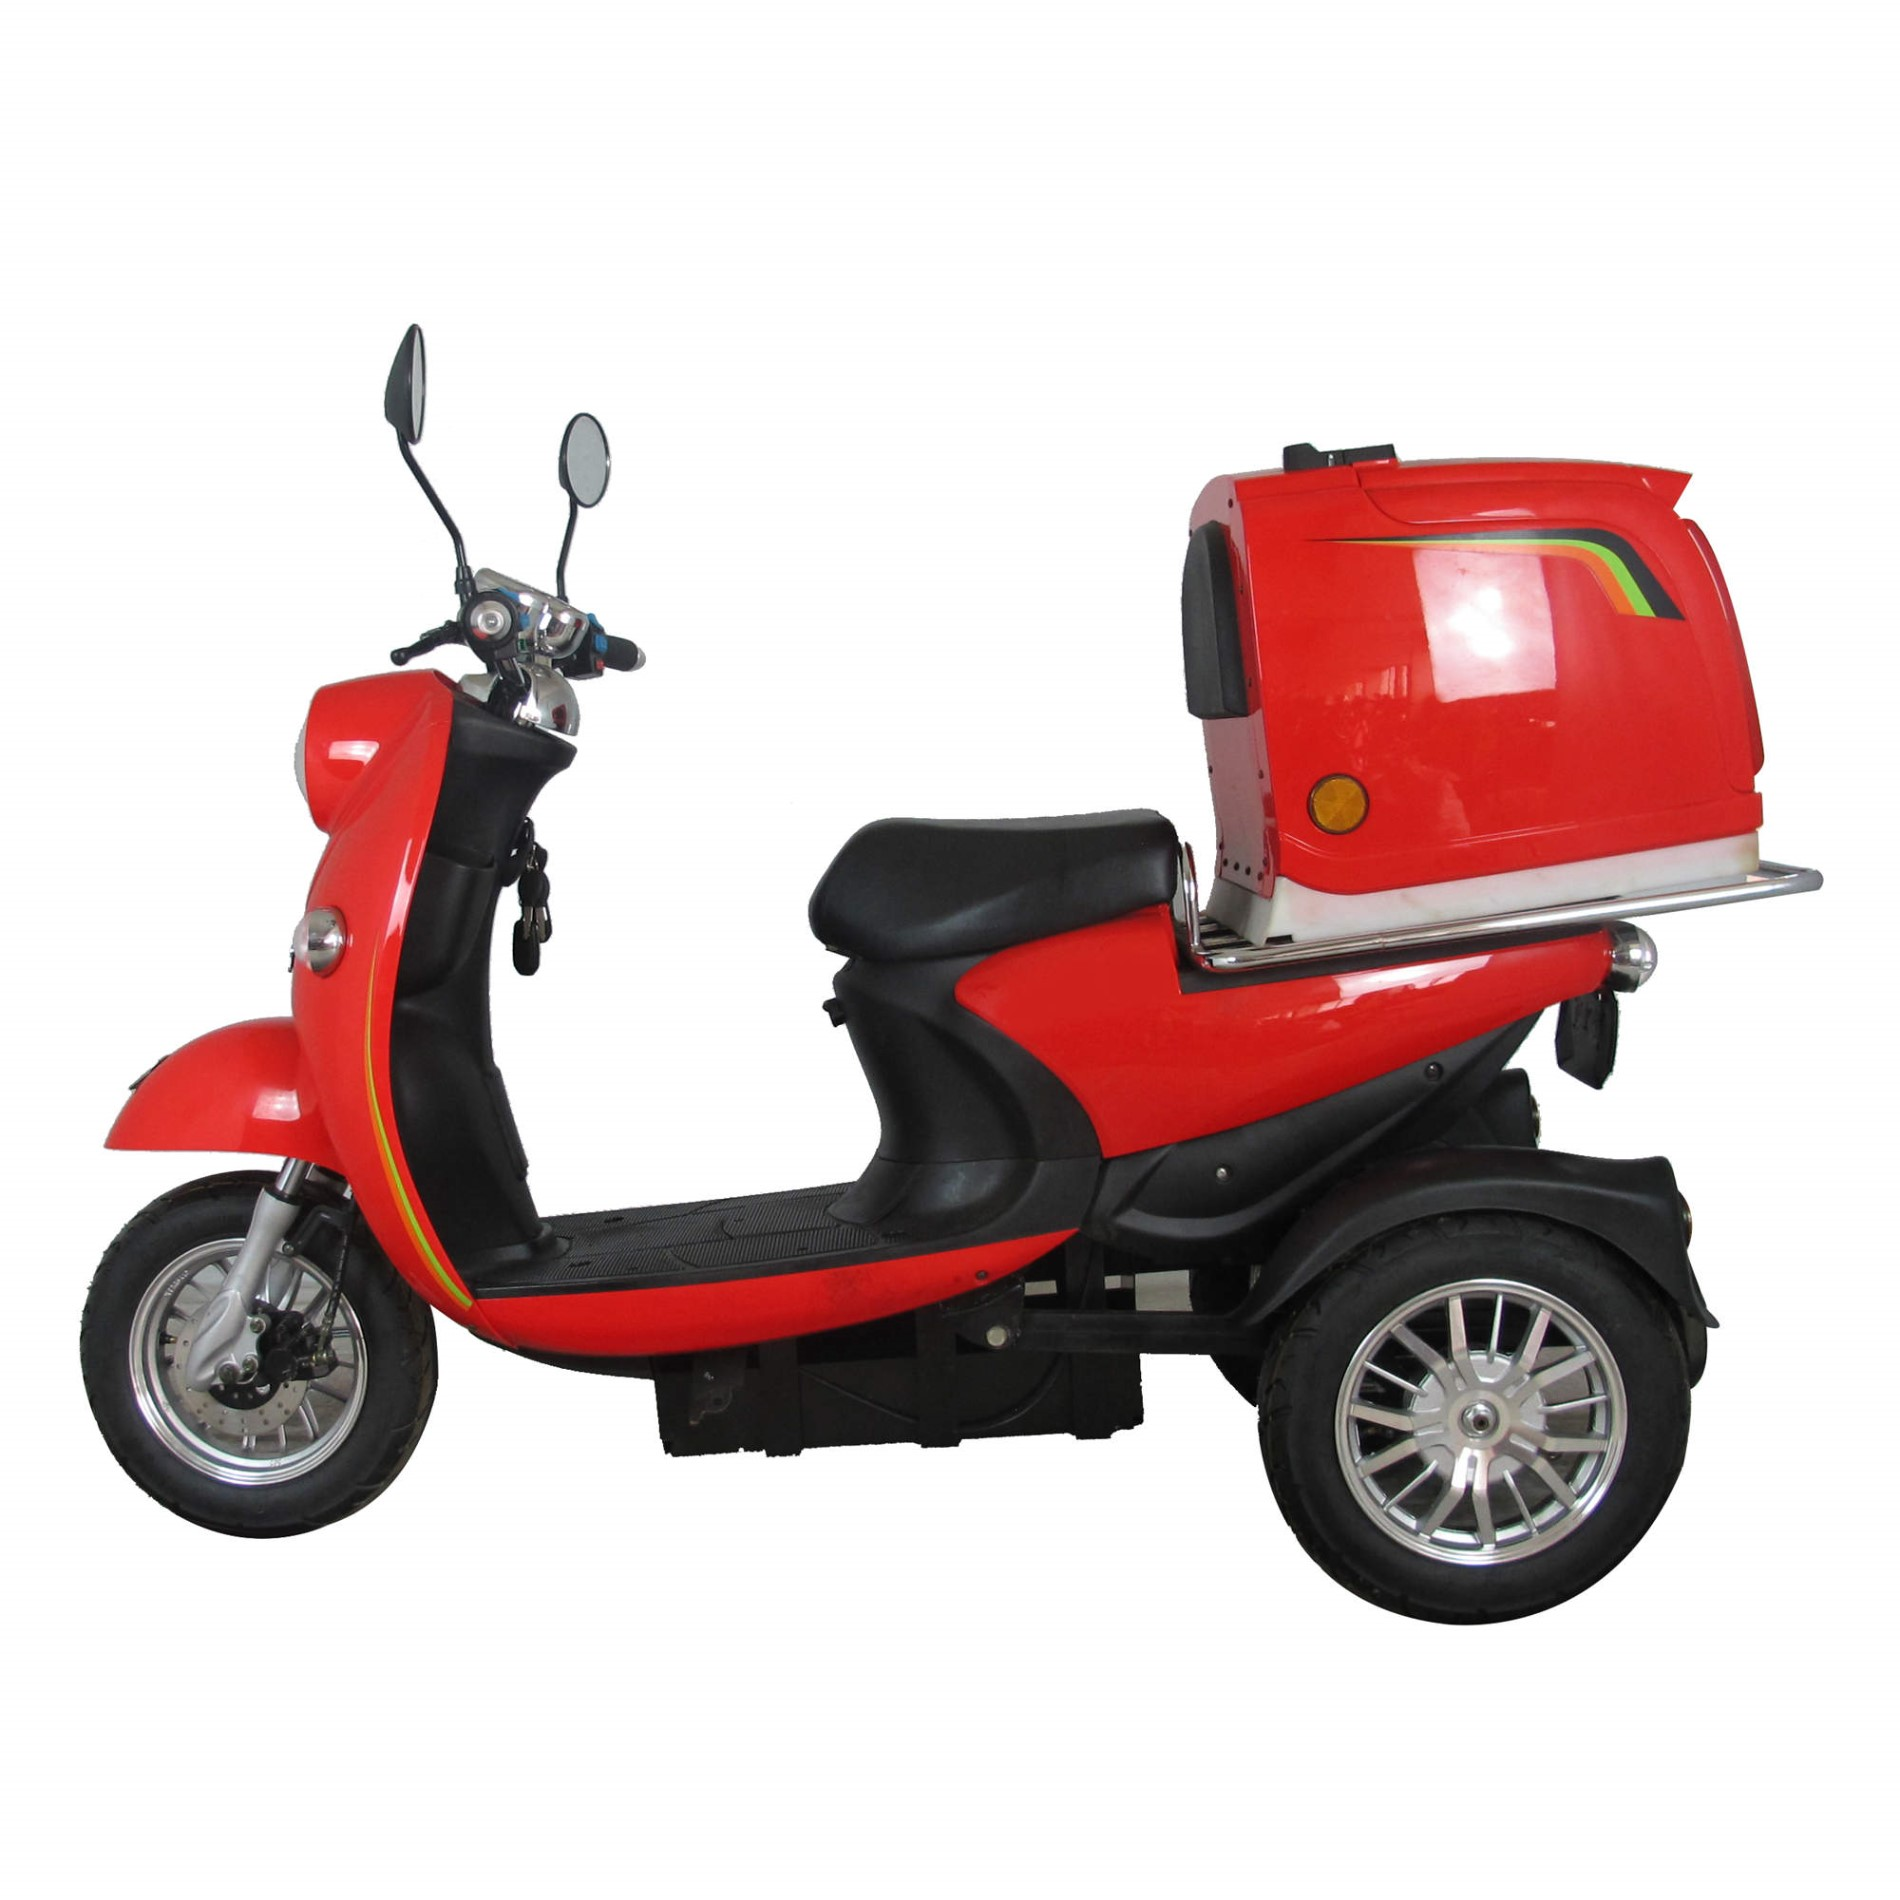 High quality Food Delivery 3 Wheel Ebike Quotes,China Food Delivery 3 Wheel Ebike Factory,Food Delivery 3 Wheel Ebike Purchasing